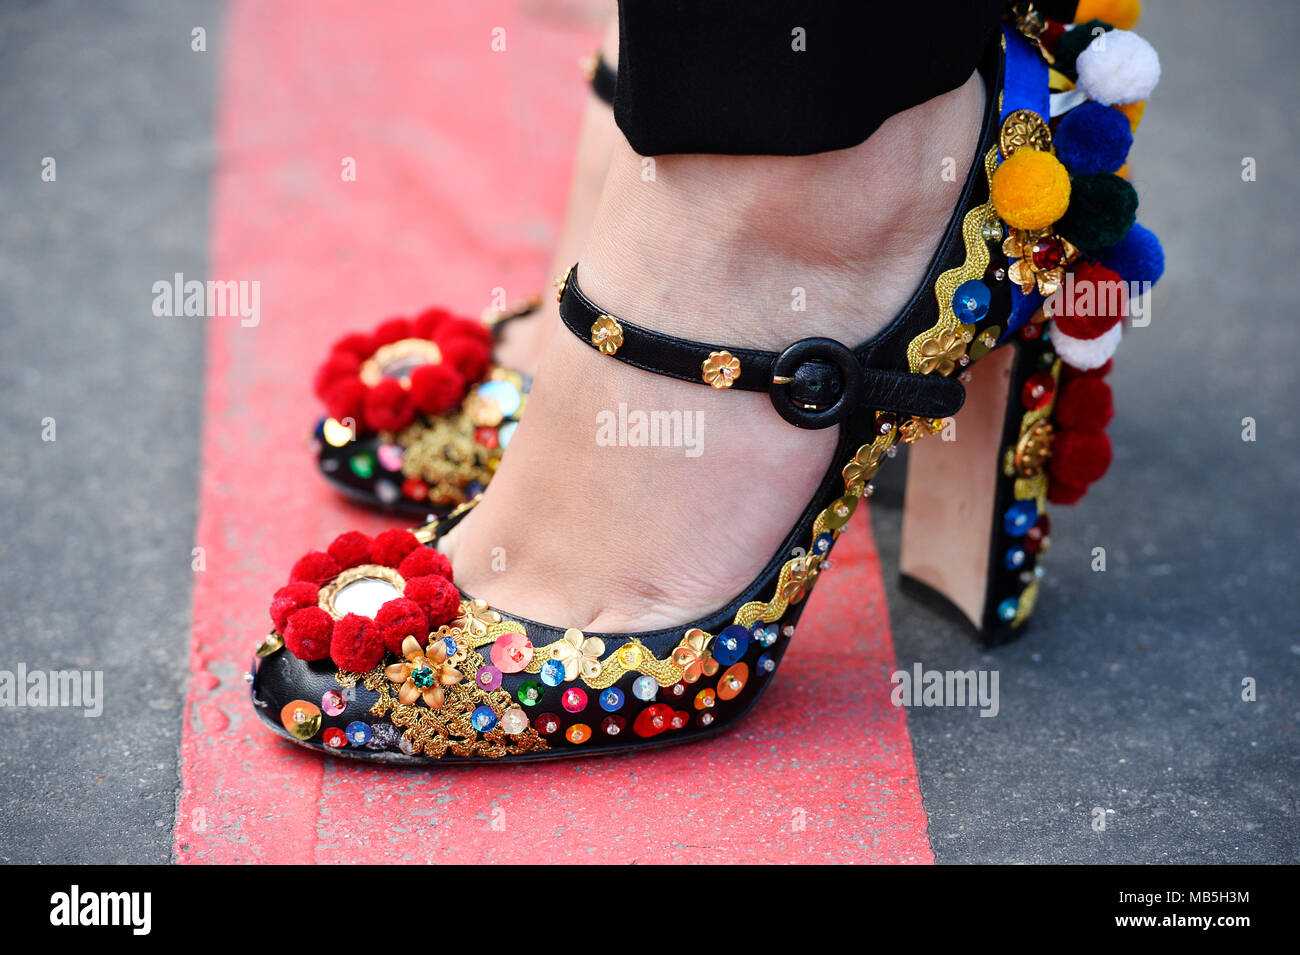 High heels shows - Fashion Week of Paris - Ready to Wear FW 18/19 - Paris - France - Stock Image